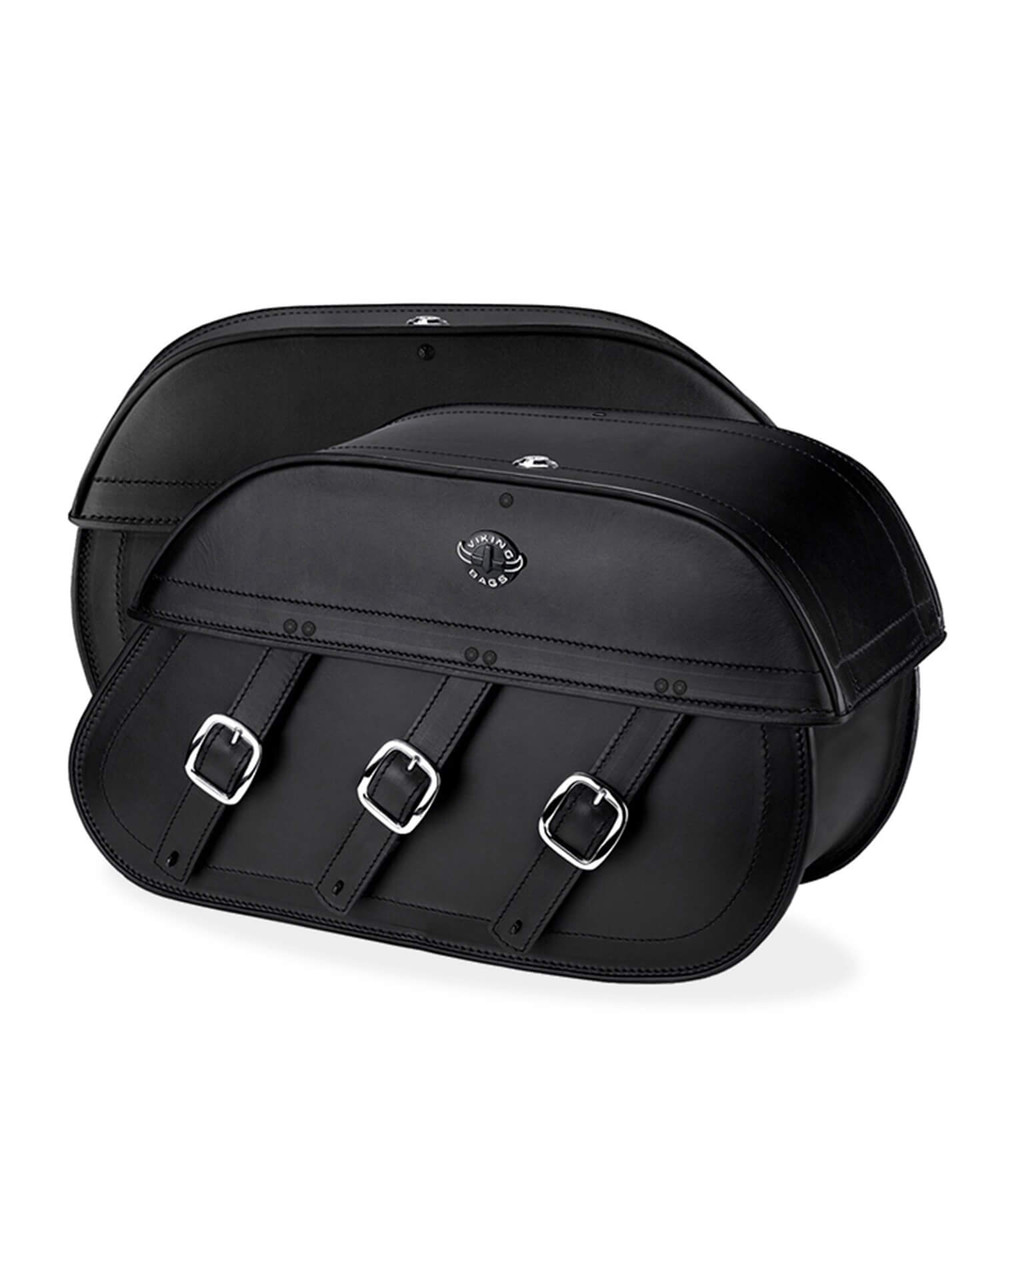 Victory High Ball Trianon Motorcycle Saddlebags both bags view